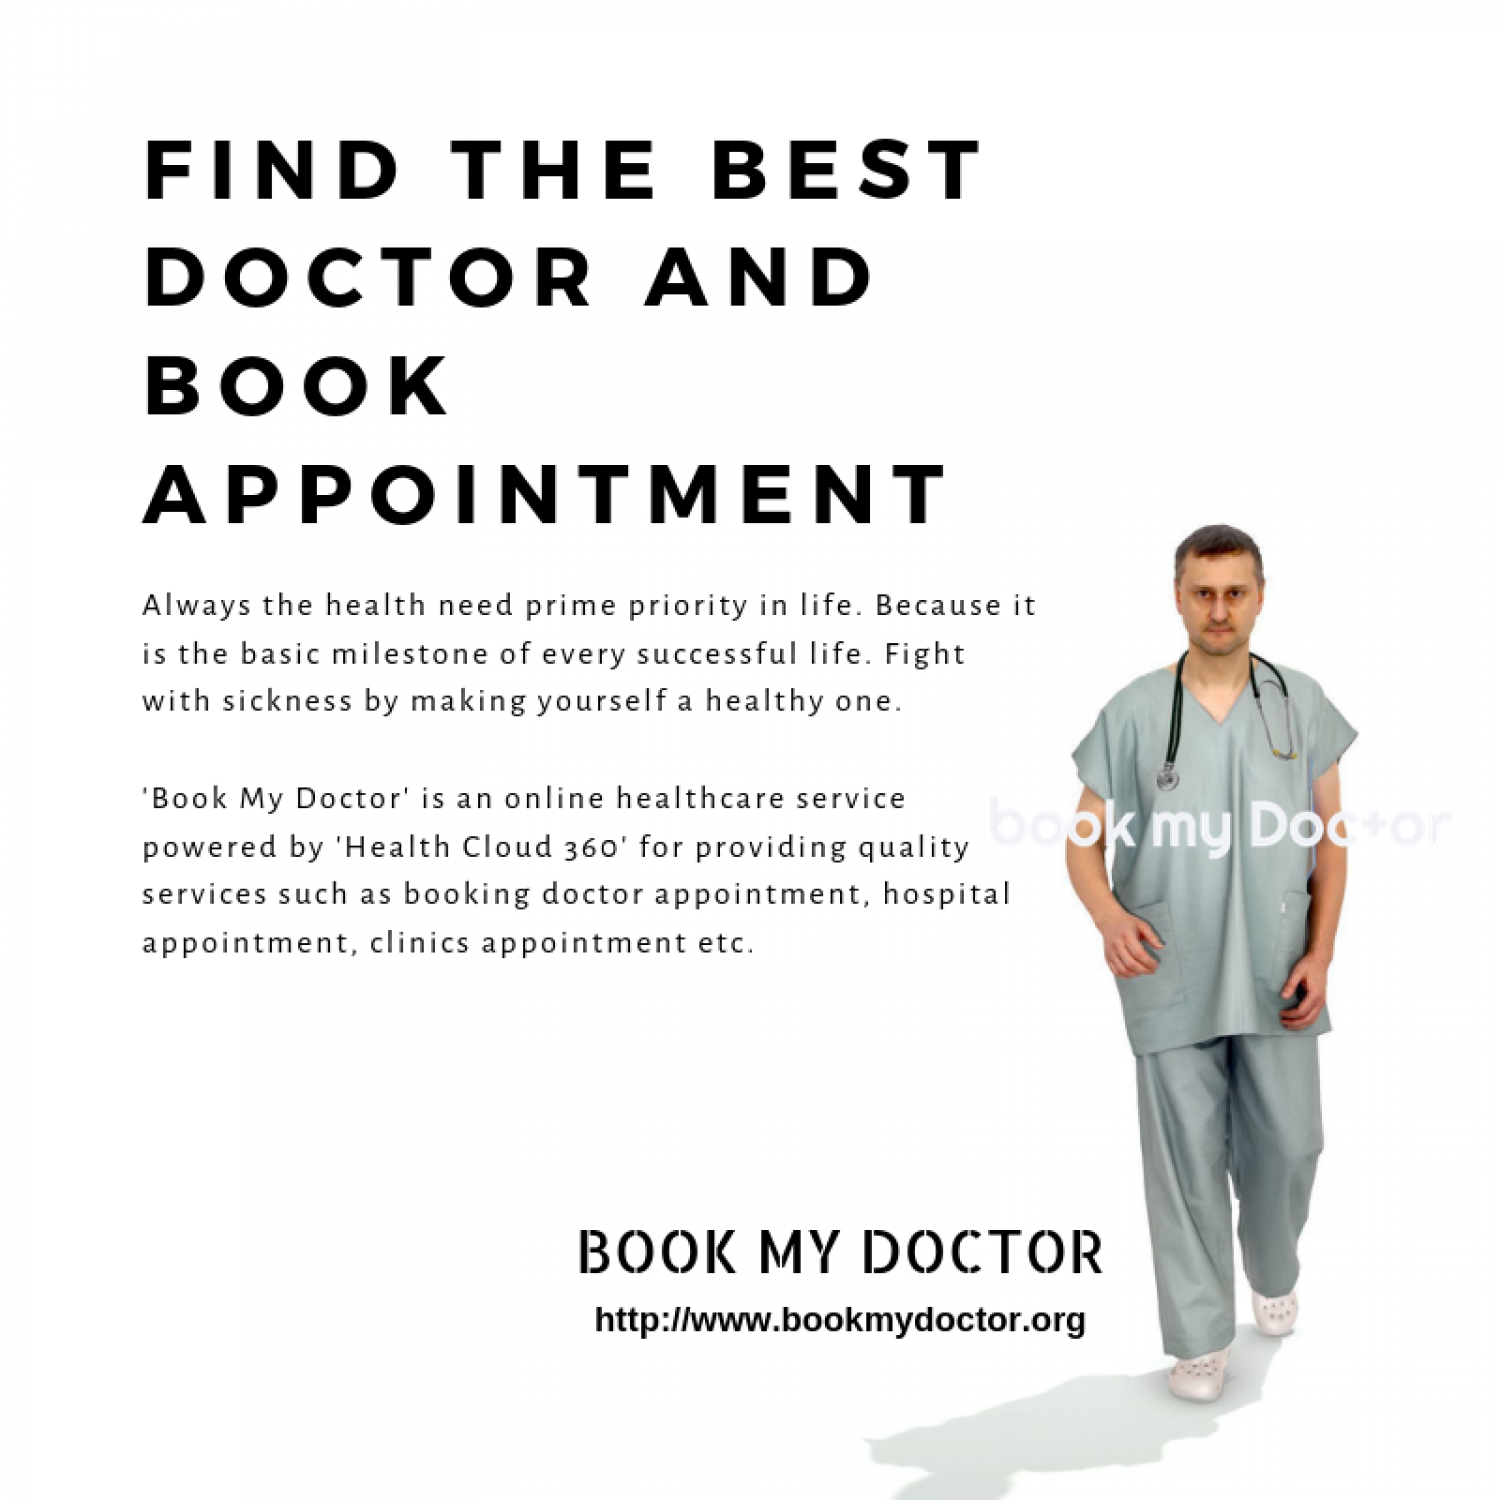 Book My Doctor: The quick way to book doctor appointment Infographic